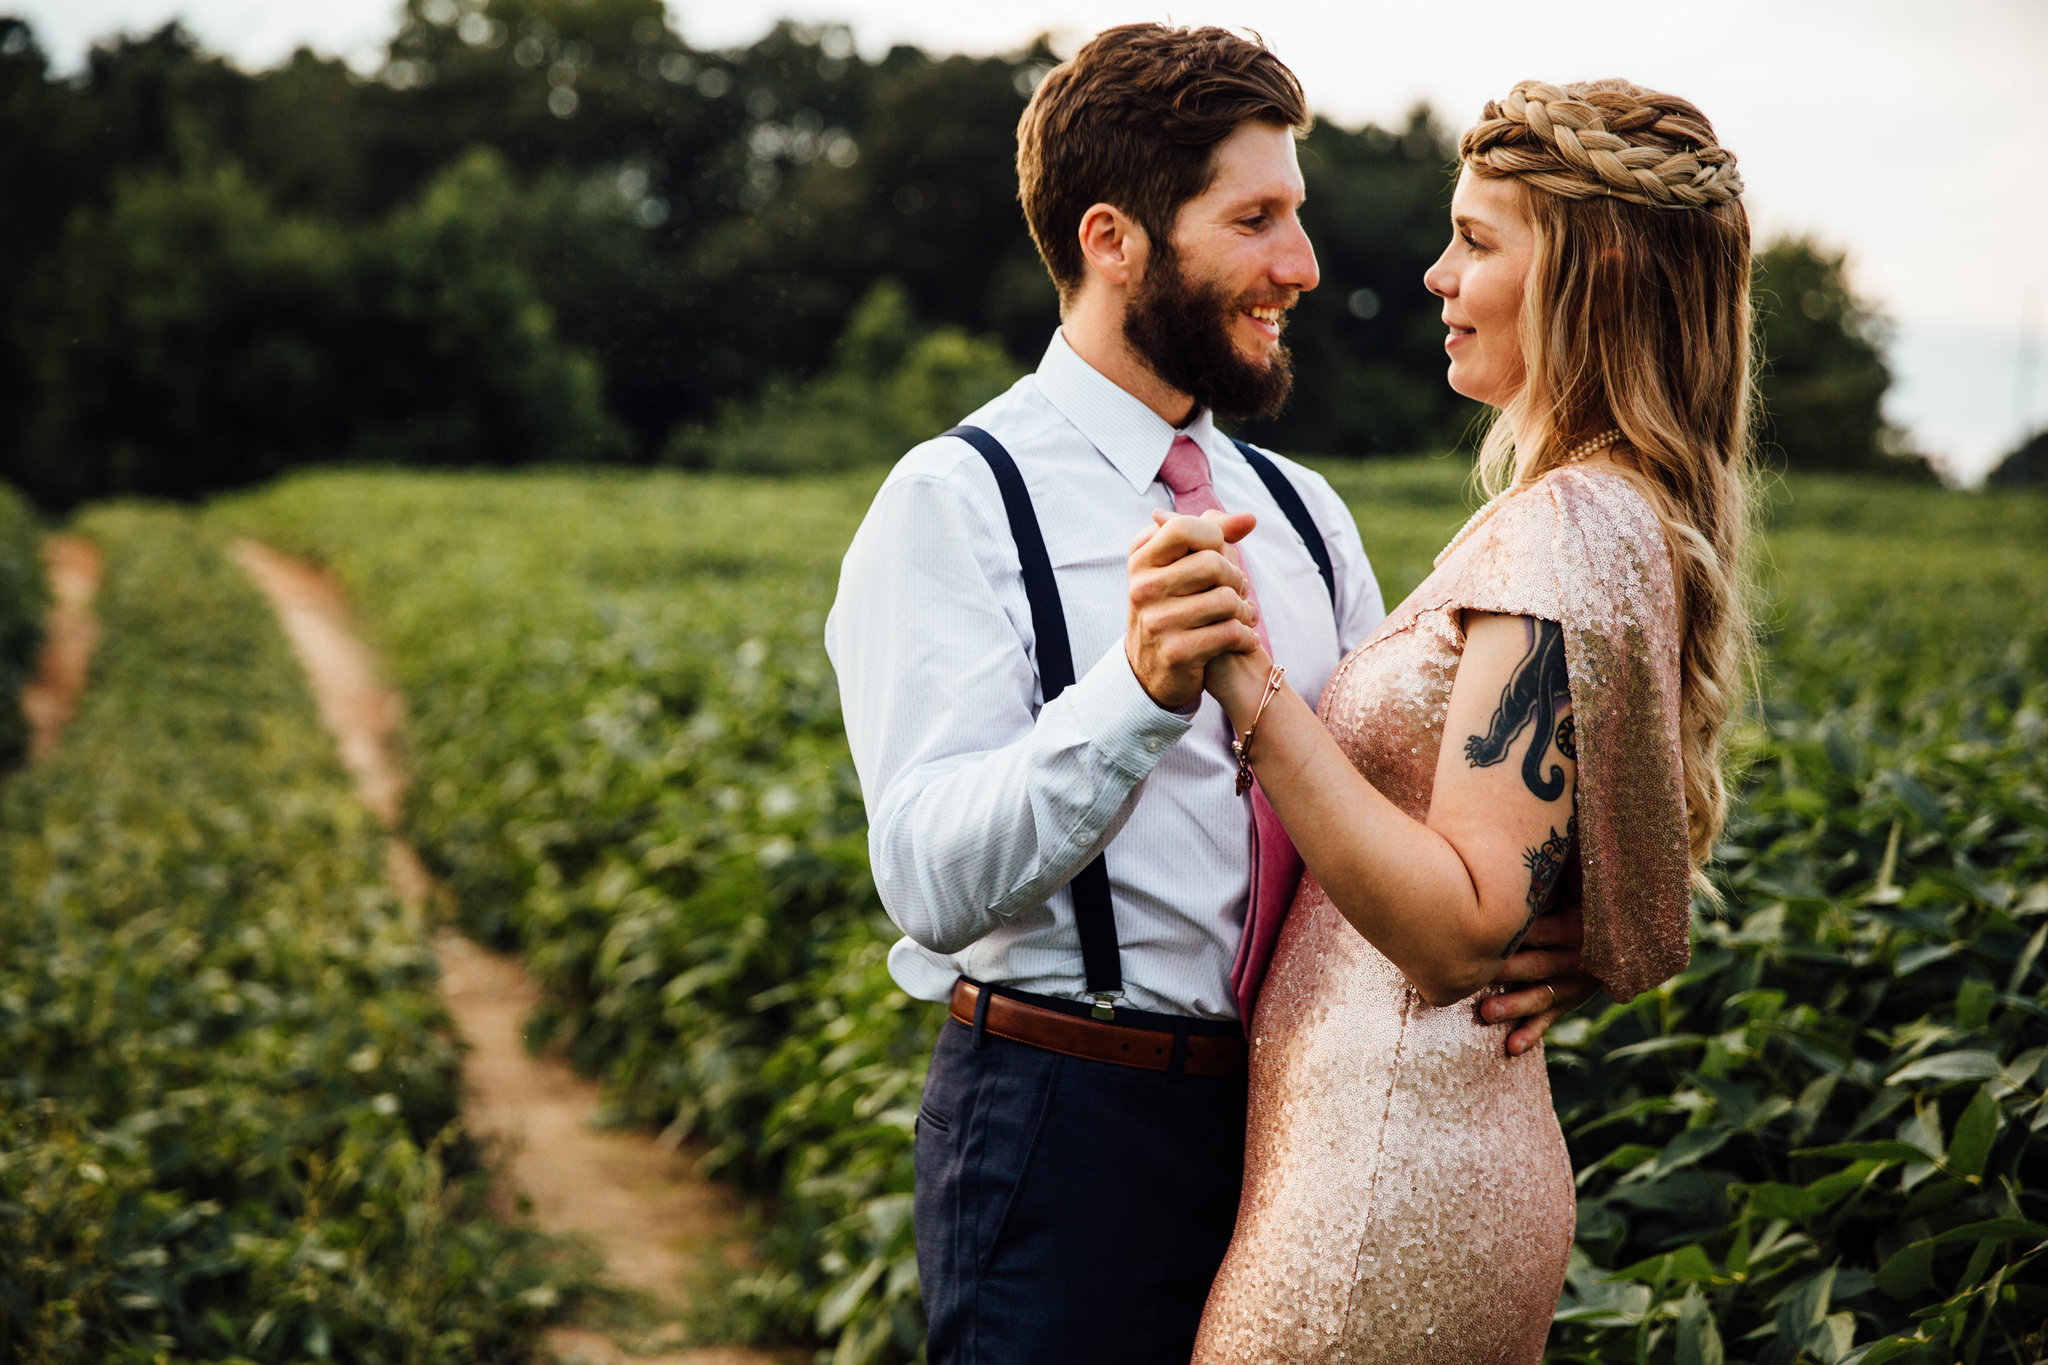 SaraLane-And-Stevie-Wedding-Photography-Alyse-Michael-Ocoee-River-Barn-Tennessee-LR-Edits-66